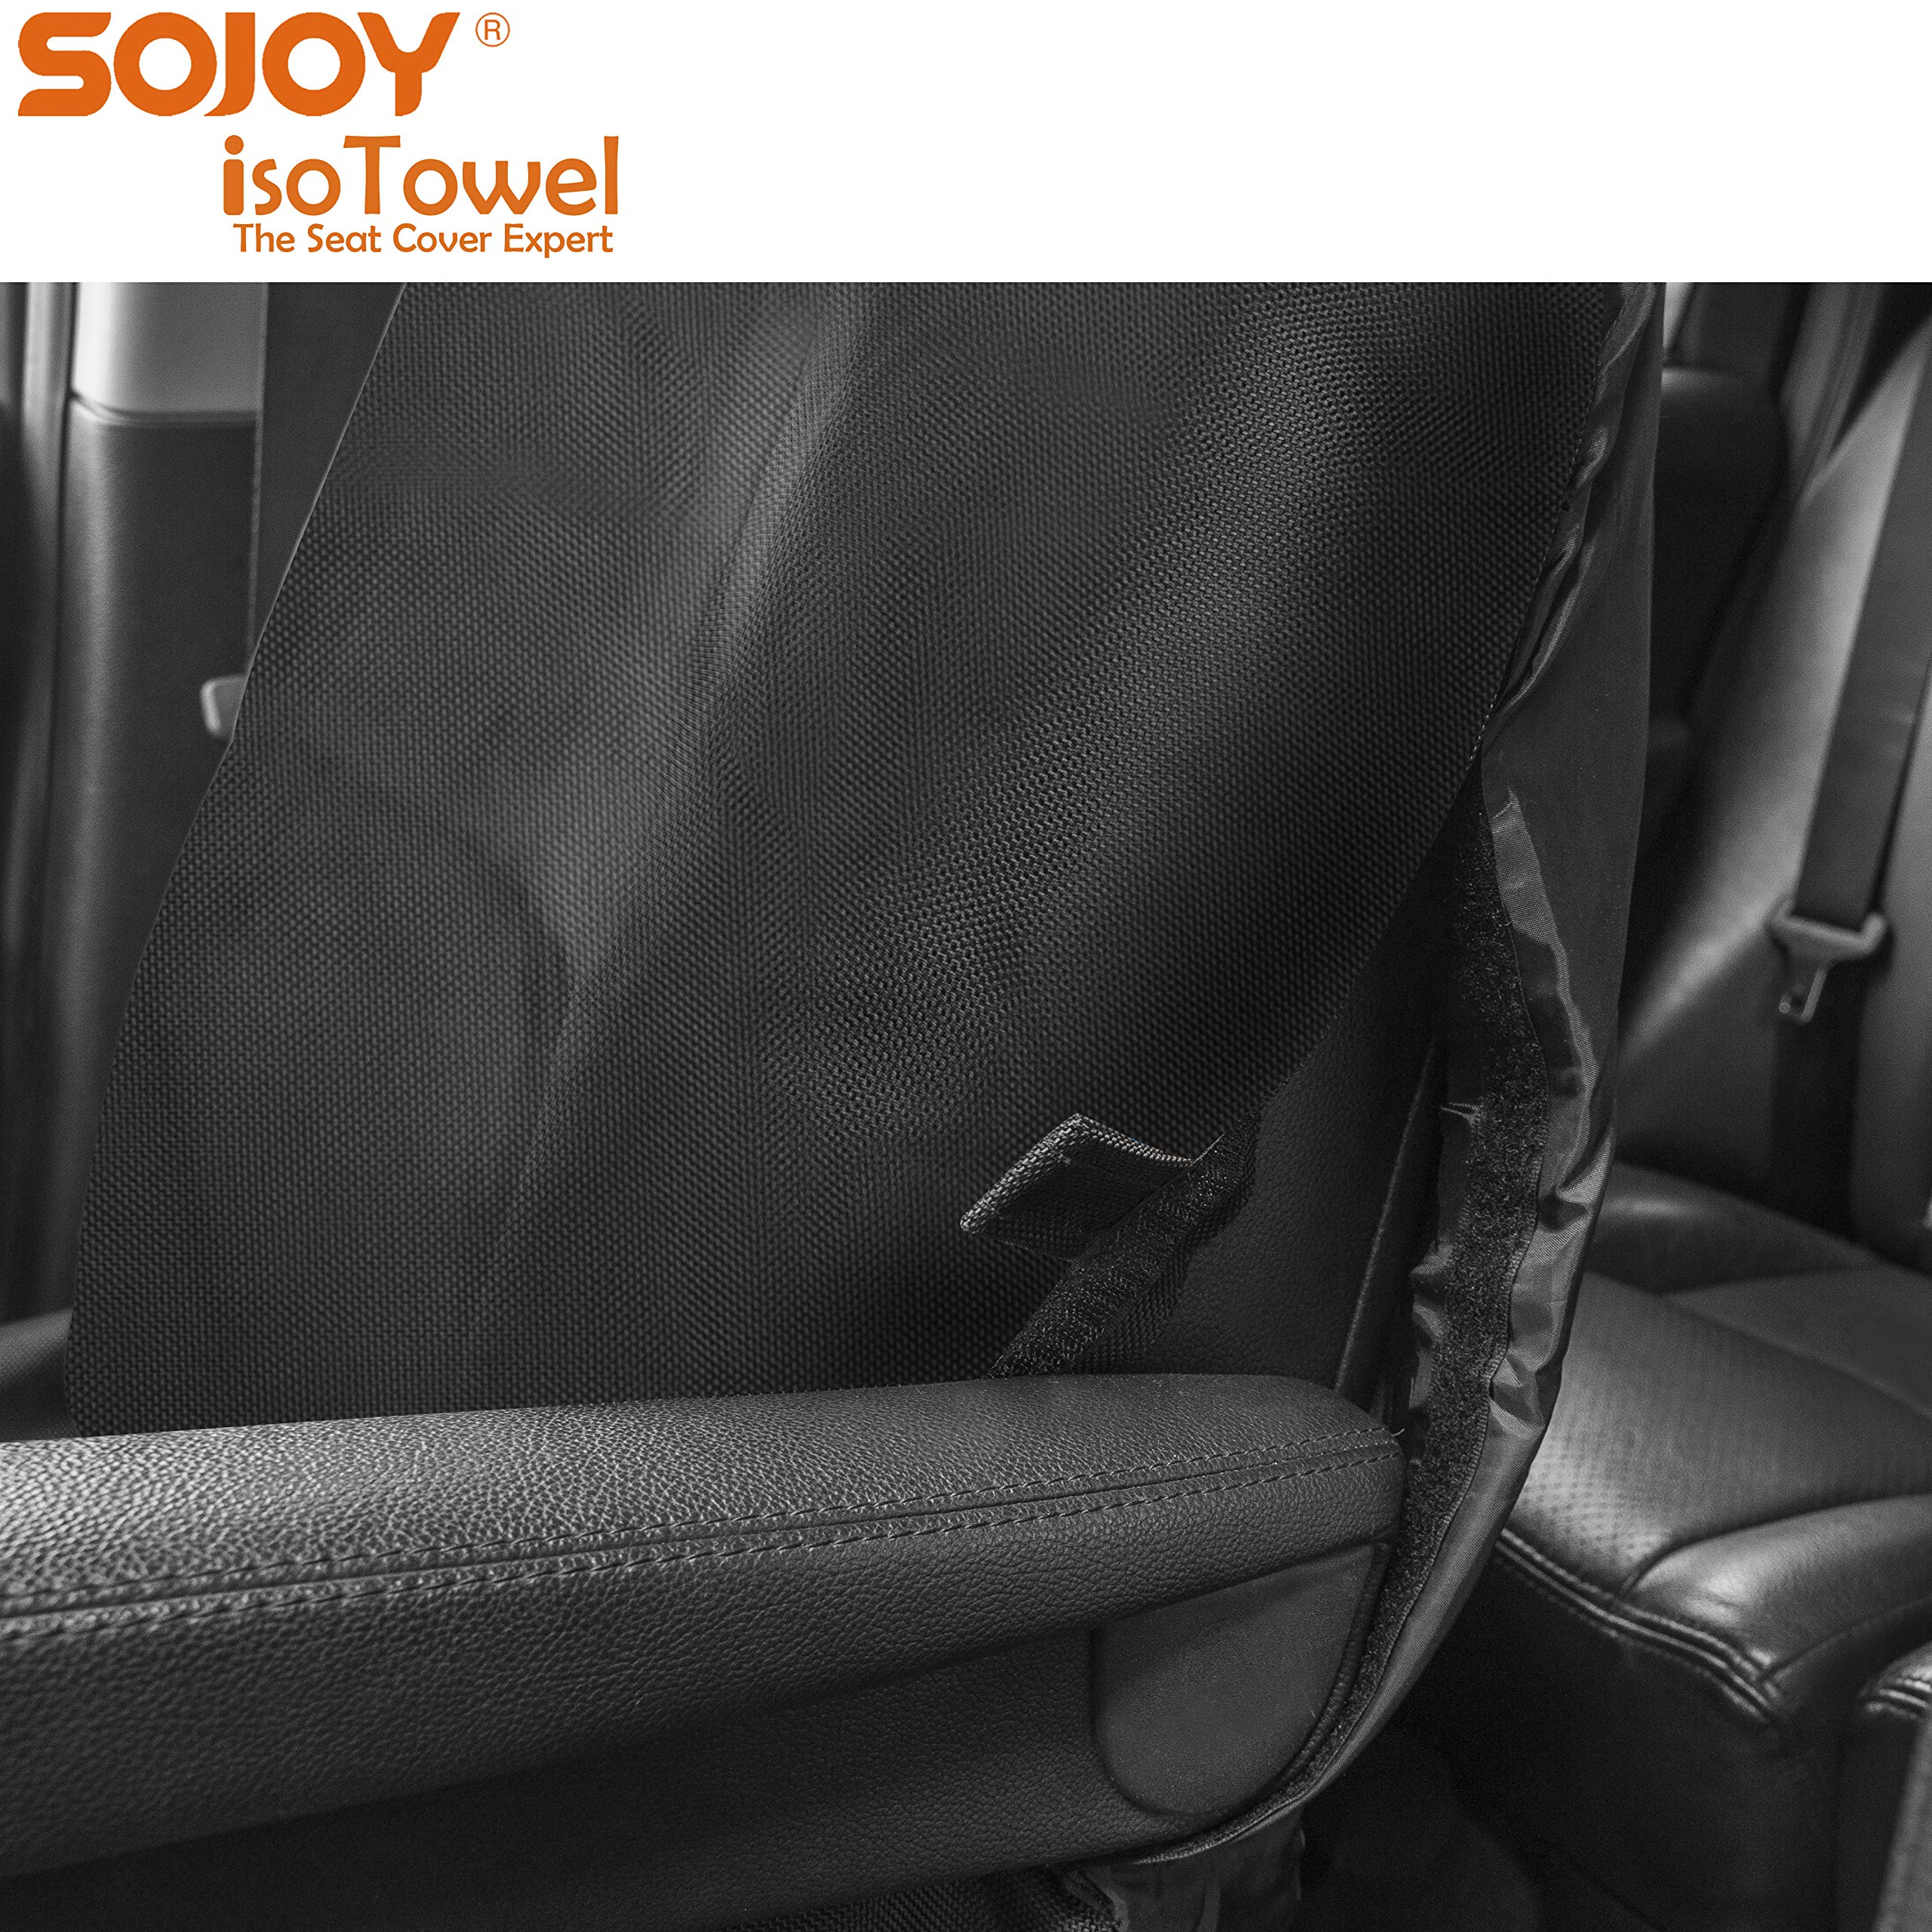 Sojoy Four Seasons Car Seat Cover - Microfiber Seat Protector with Quick-Dry, No-Slip Technology. Car Seat Protection from All Workouts, All-Weather (Black) by Sojoy (Image #3)